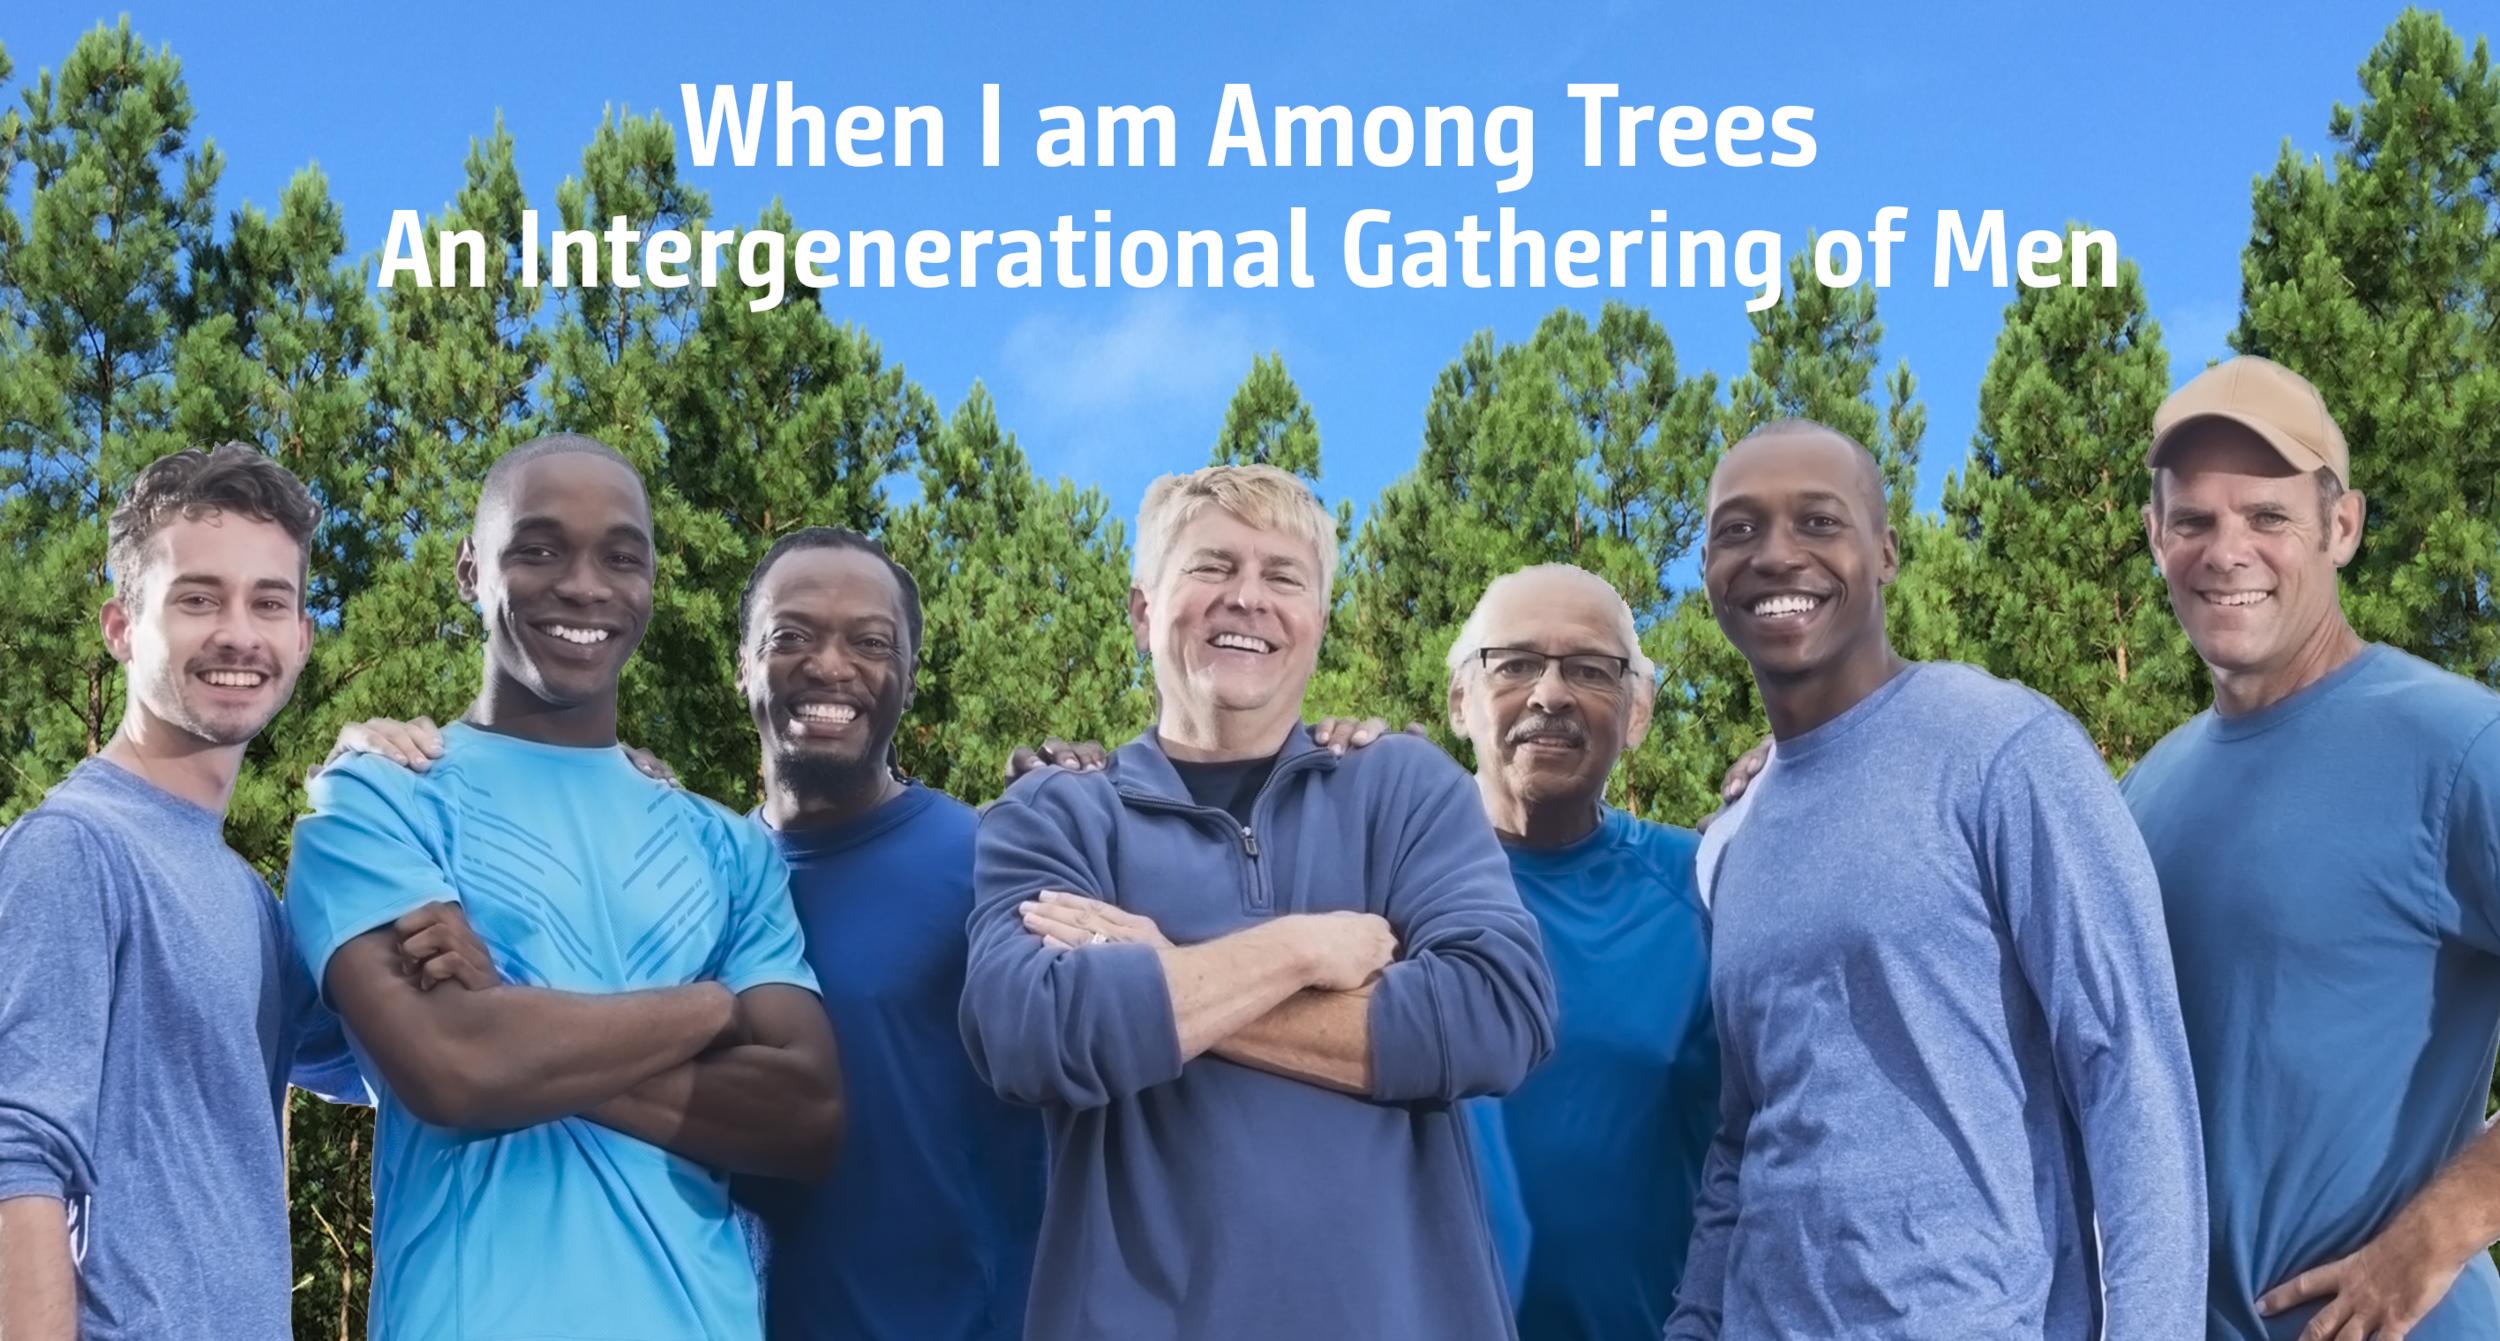 When I am Among Trees - An Intergenerational Gathering of Men